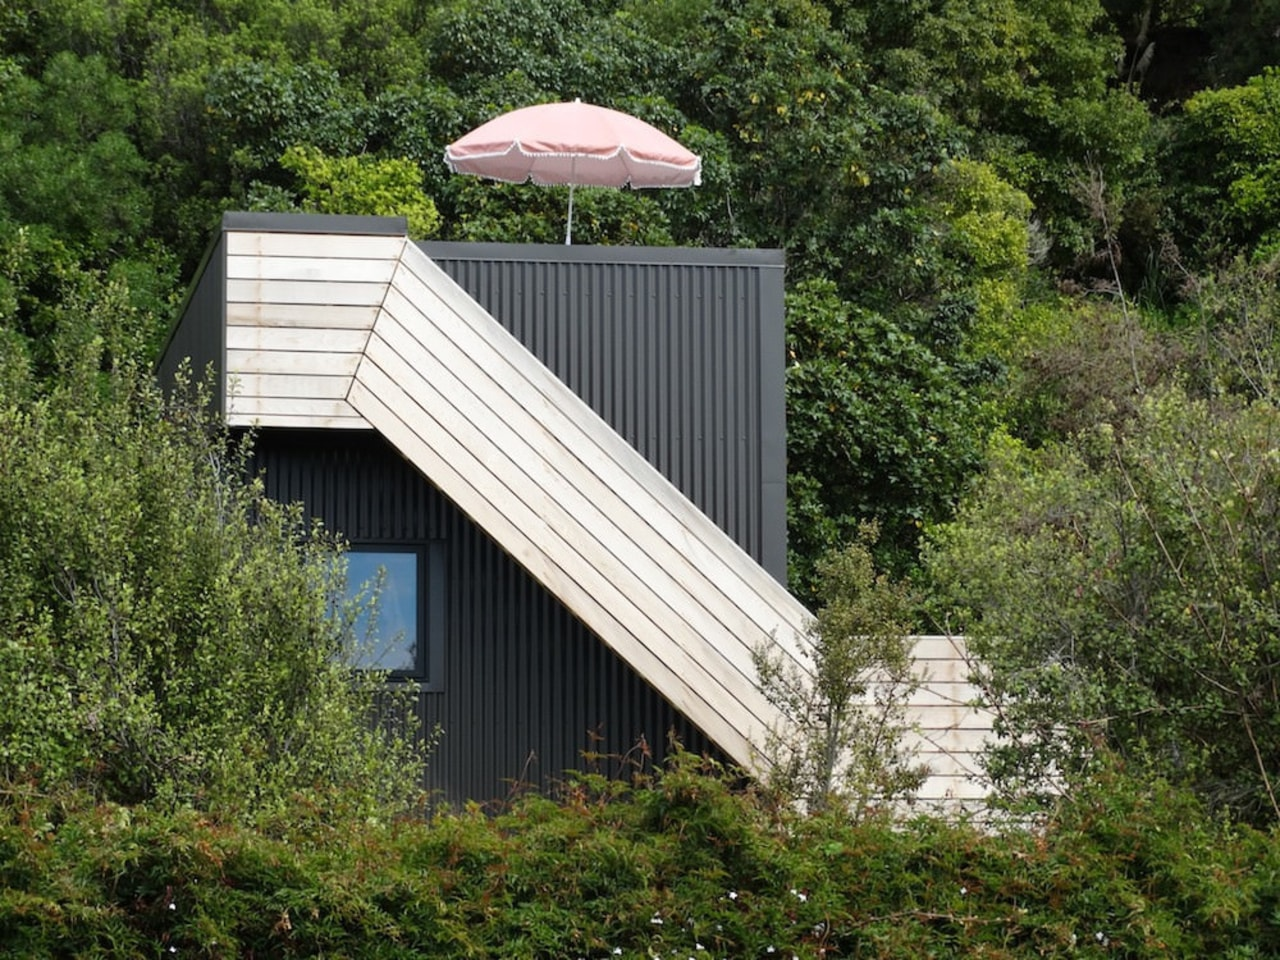 Graham Phipps-Black – Ruby Bay, Nelson house architecture, cottage, house, hut, outdoor structure, roof, shed, tree, wood, brown